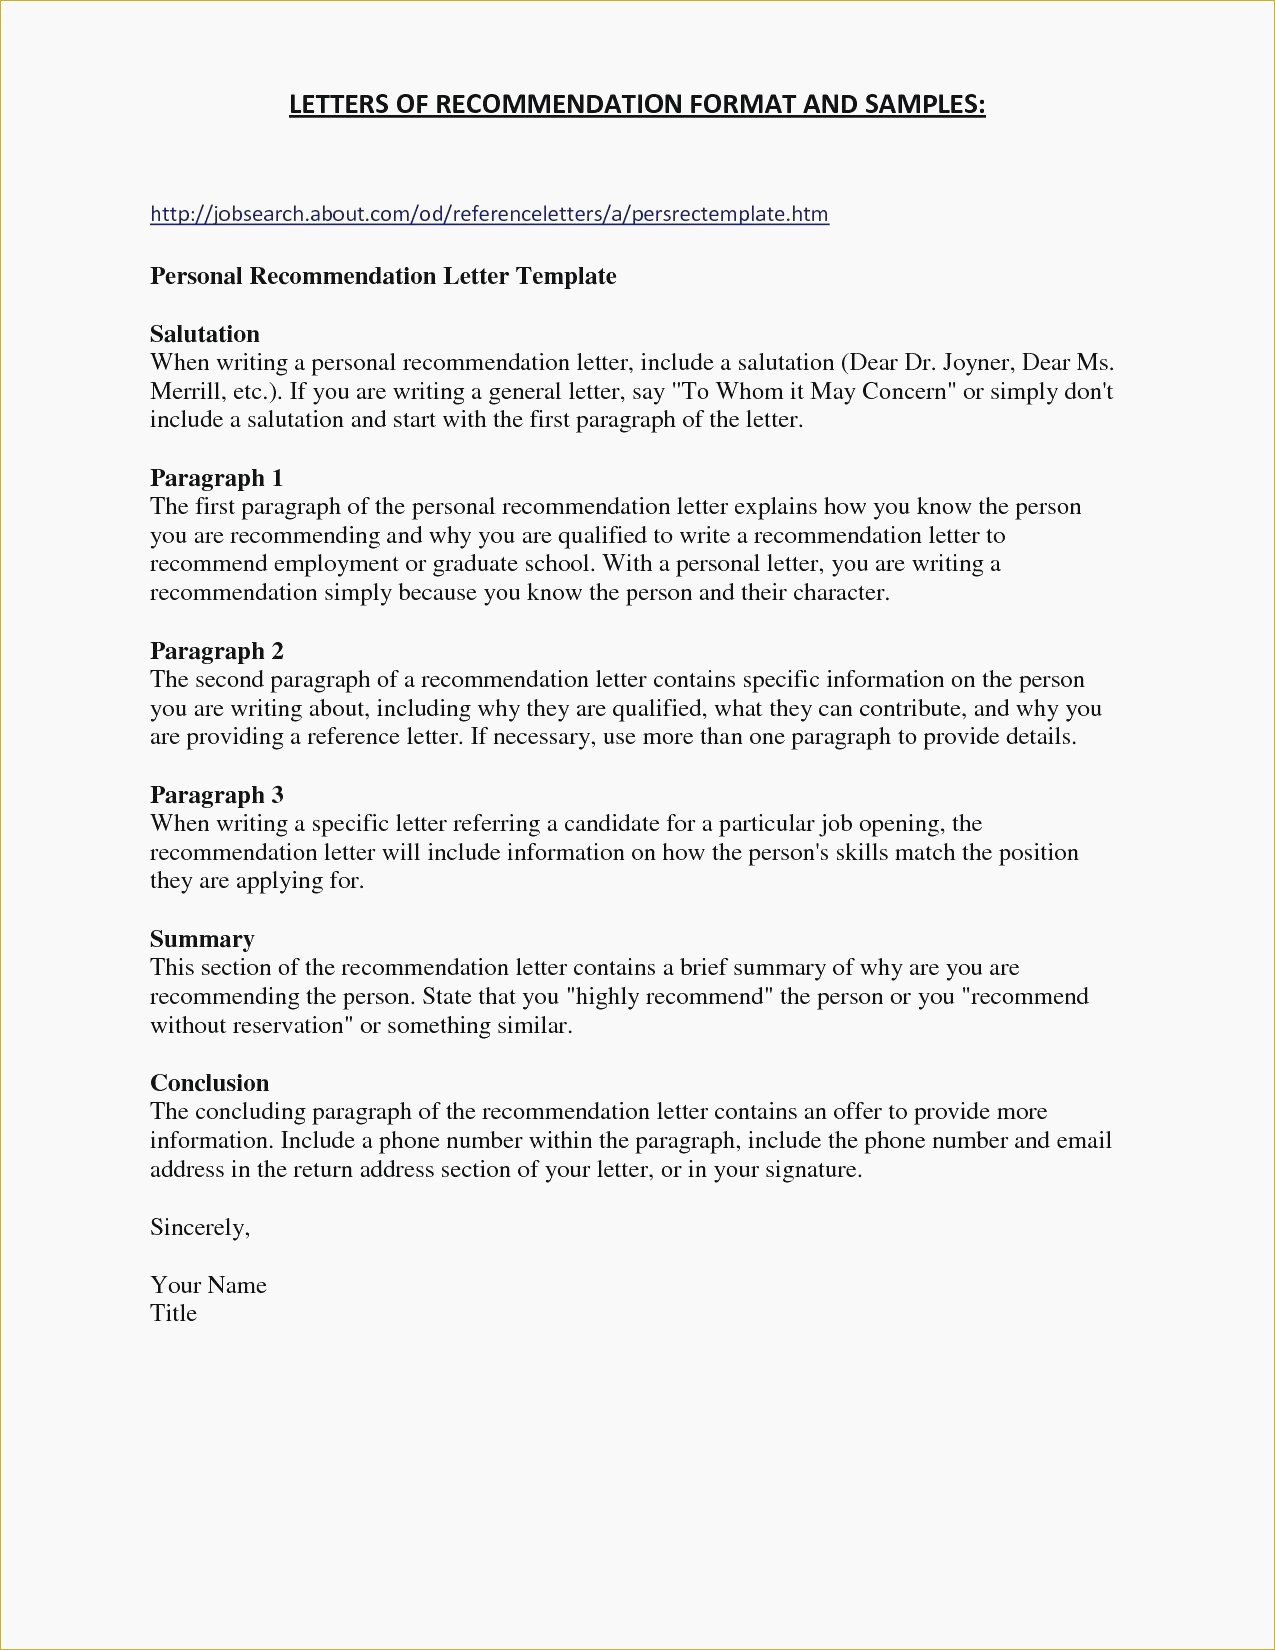 personal letter template word example-Gallery of Personal Reference Letter Template Word 8-k